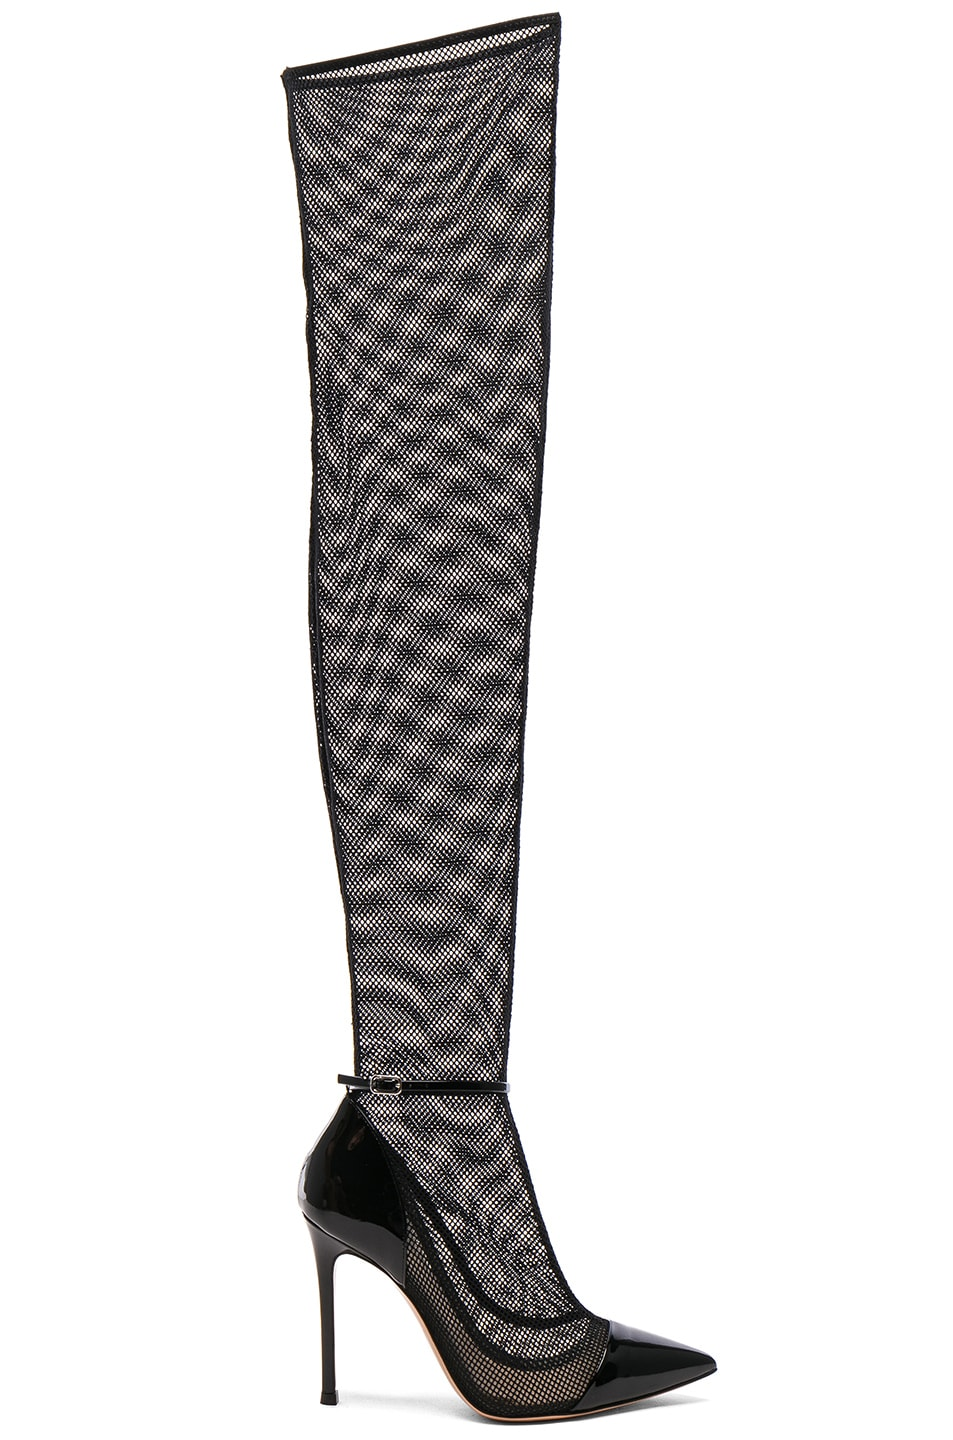 Gianvito Rossi Patent & Mesh Idol Thigh High Boots in . GKxUDw9